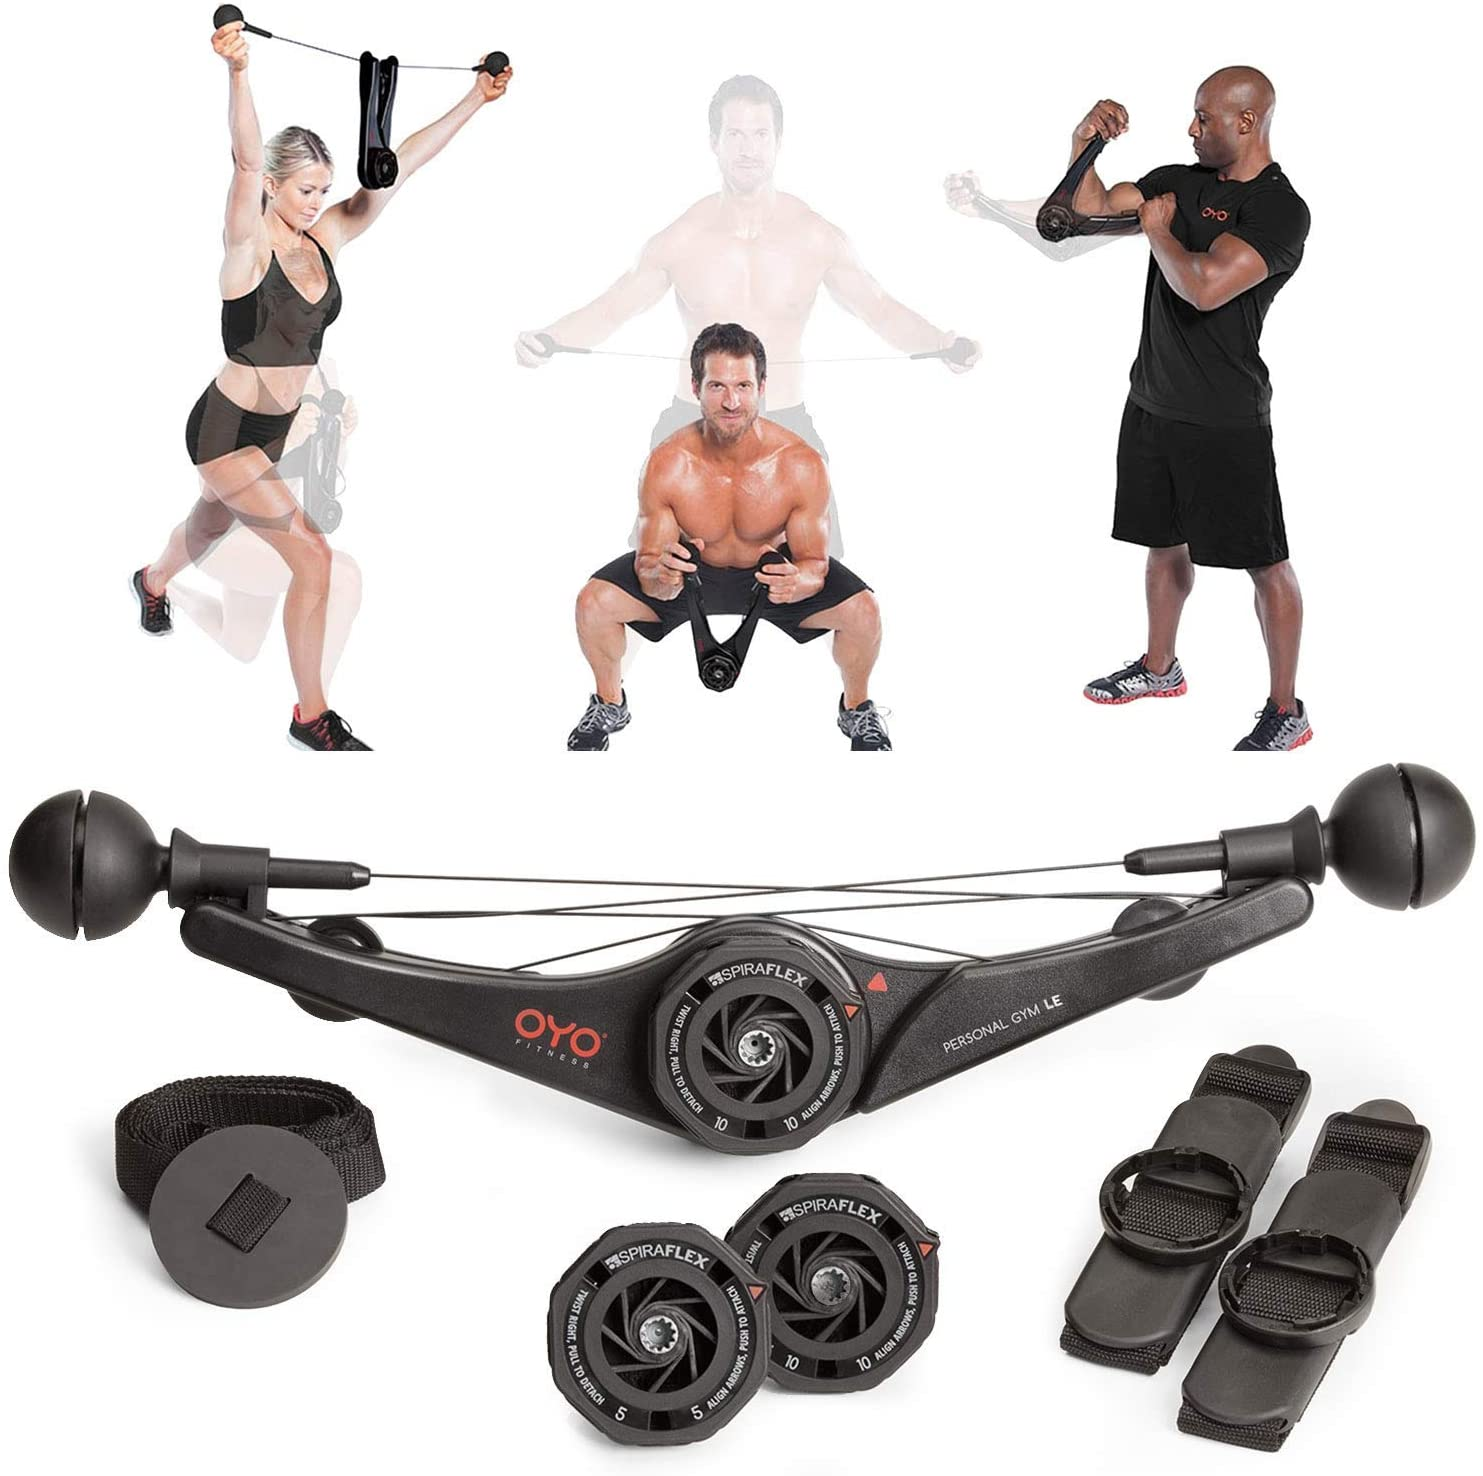 Review of OYO Personal Gym - Full Body Portable Gym Equipment Set